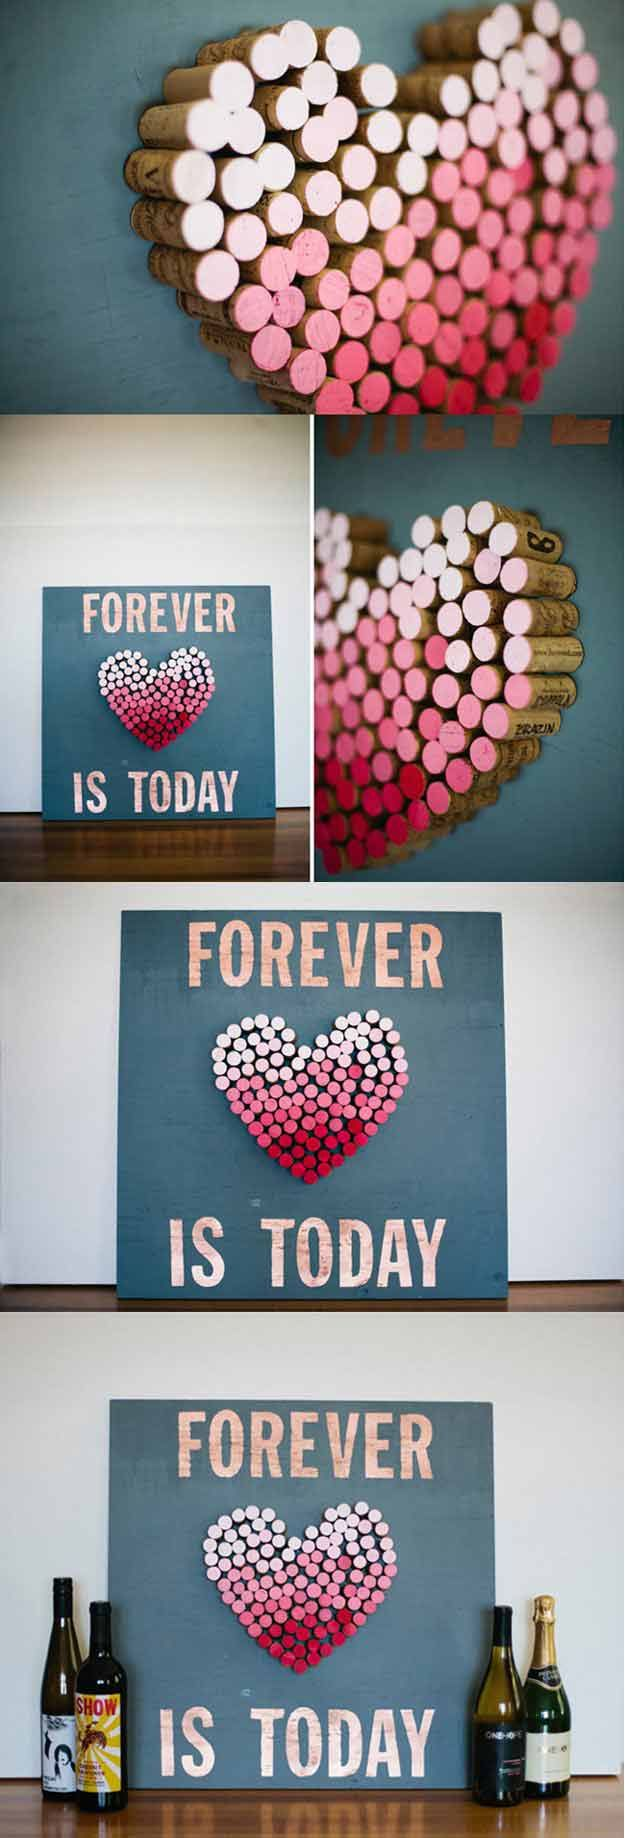 Cool Diy Projects The 25 Best Cool Diy Projects Ideas On Pinterest Fun Diy Crafts